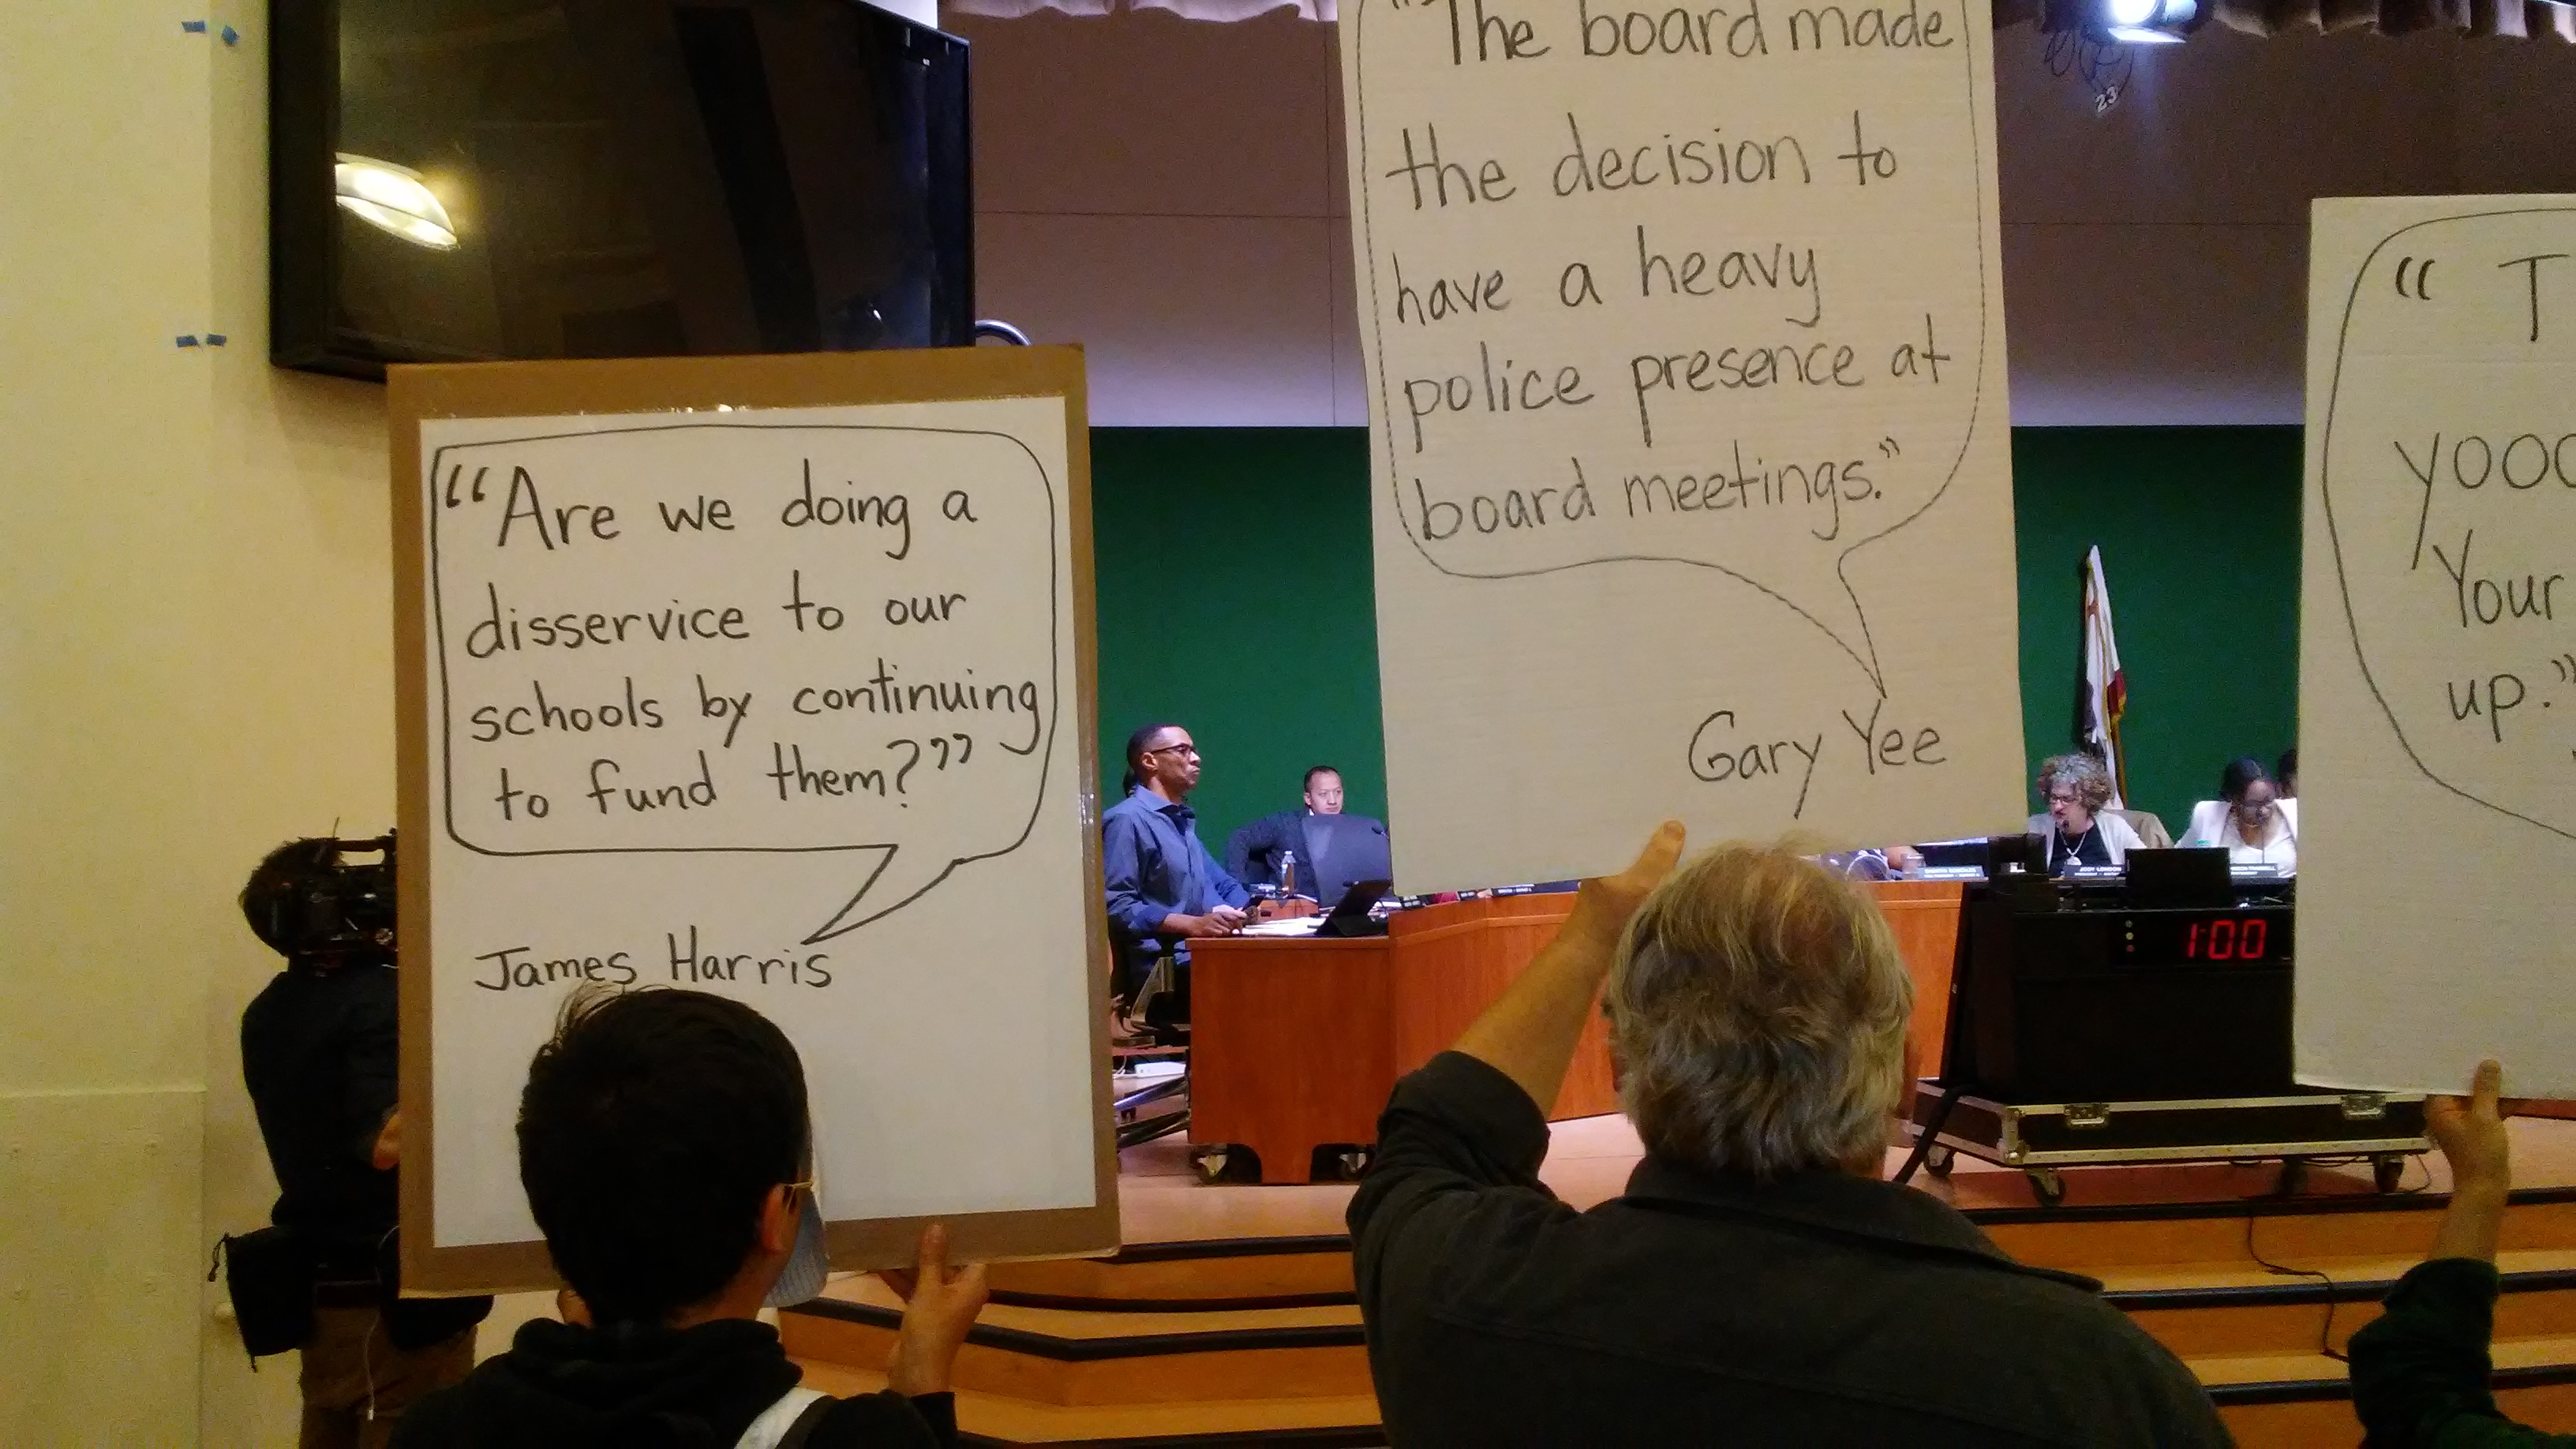 At last week's Oakland School Board meeting, Board member James Harris, one of four incumbents who will not run for re-election this year, listens to District Finance staff present their recommendations for over $20 million in budget cuts for next year. Oakland Not For Sale Protesters, holding signs in the foreground, changed their tactics, remaining silent so that the Board could not use them as an excuse to conduct public business in private.